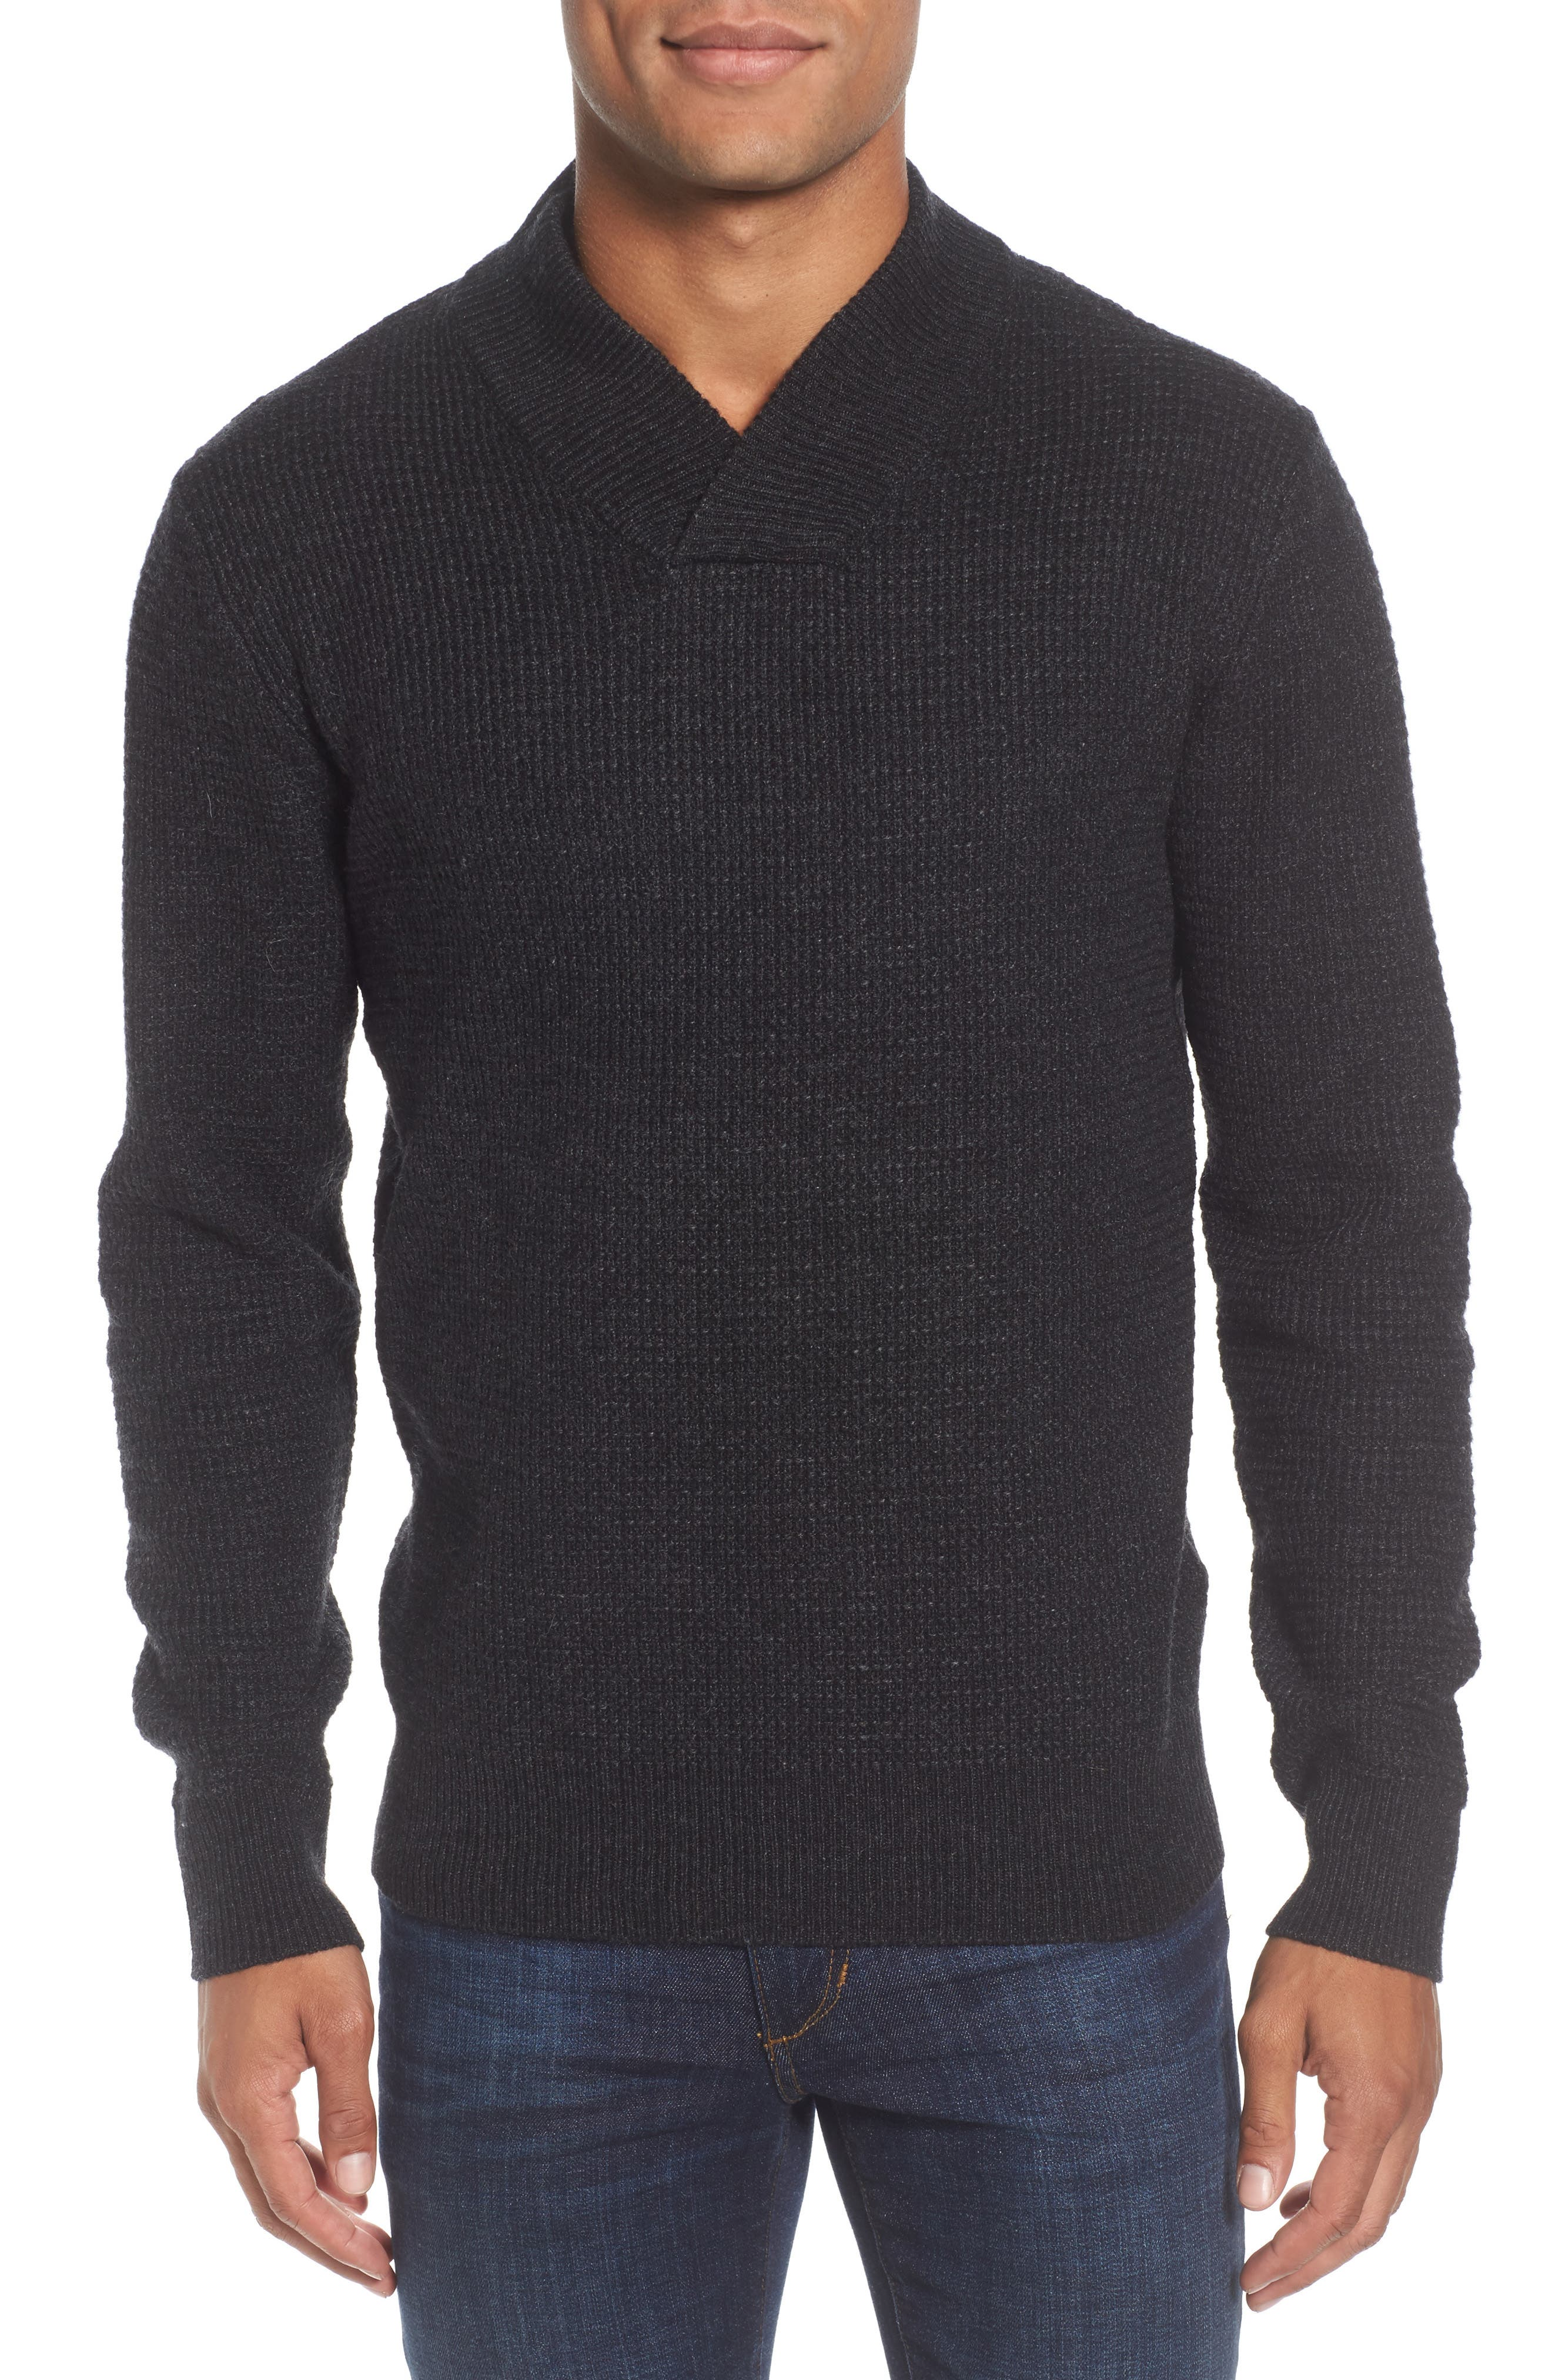 Waffle Knit Thermal Wool Blend Pullover,                         Main,                         color, BLACK